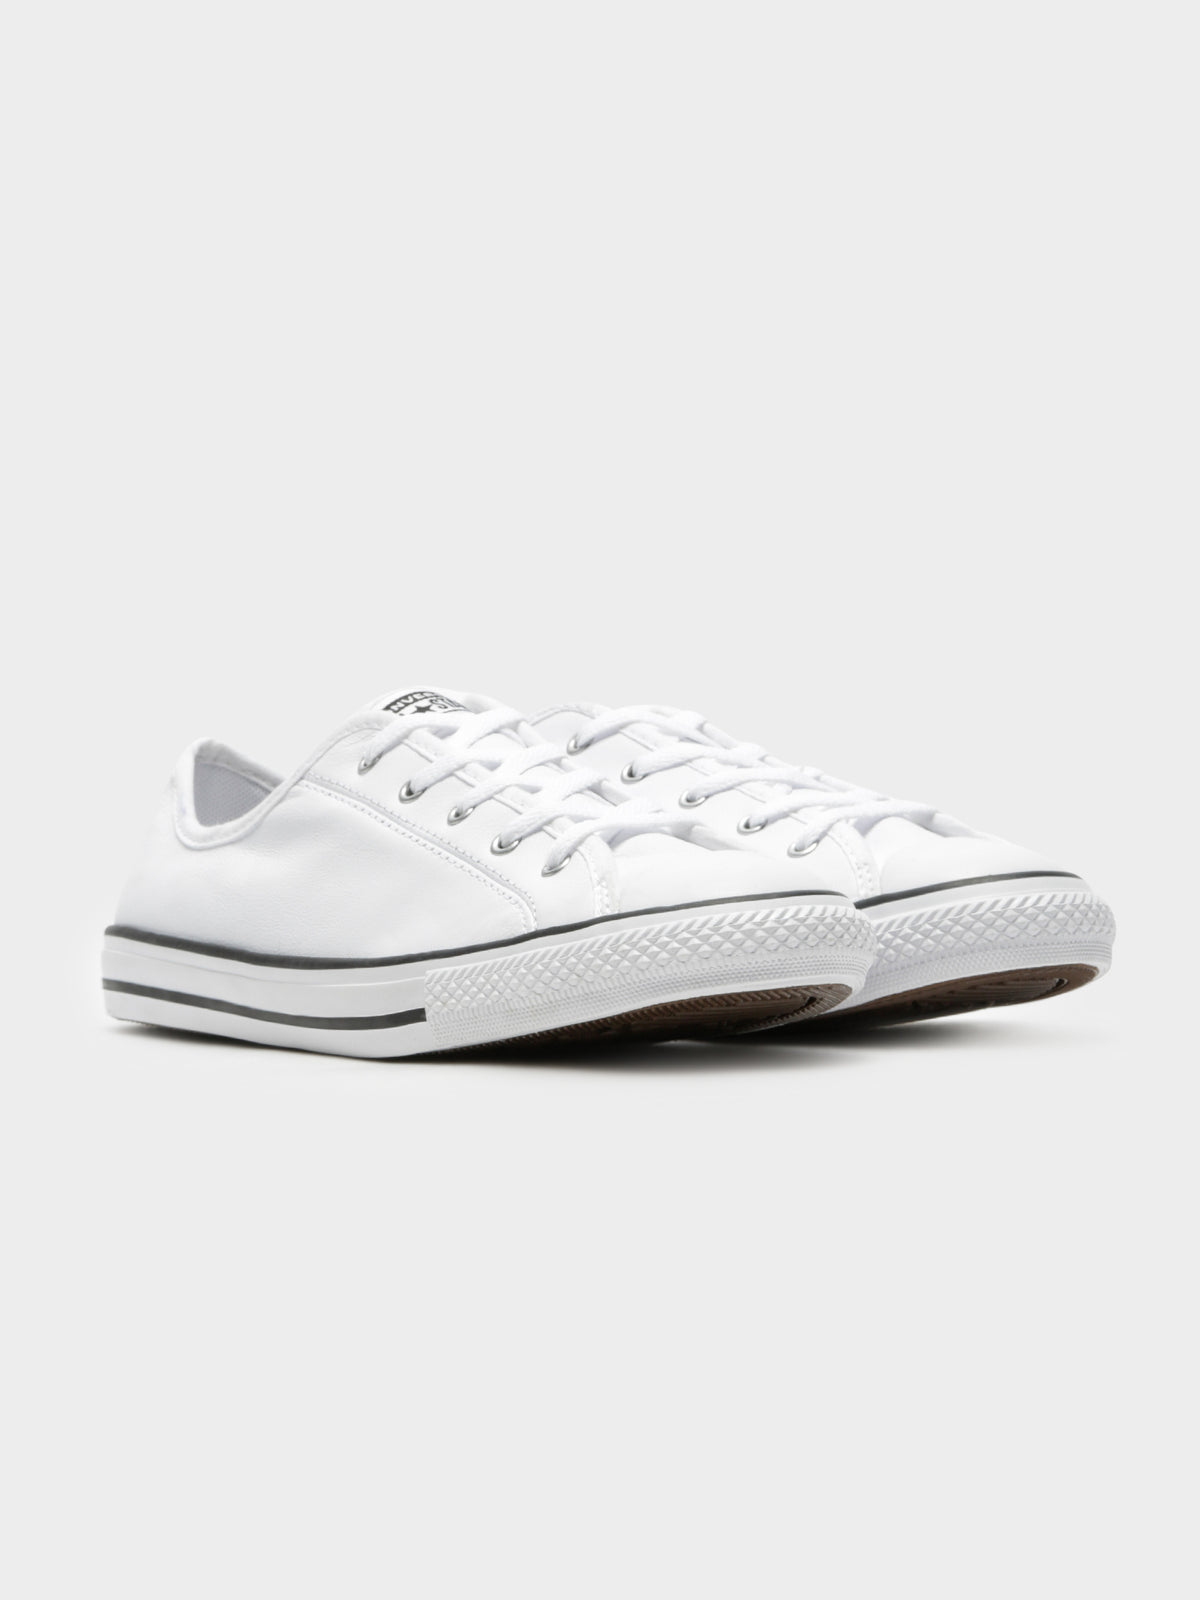 Dainty Leather Low Top Sneakers in White